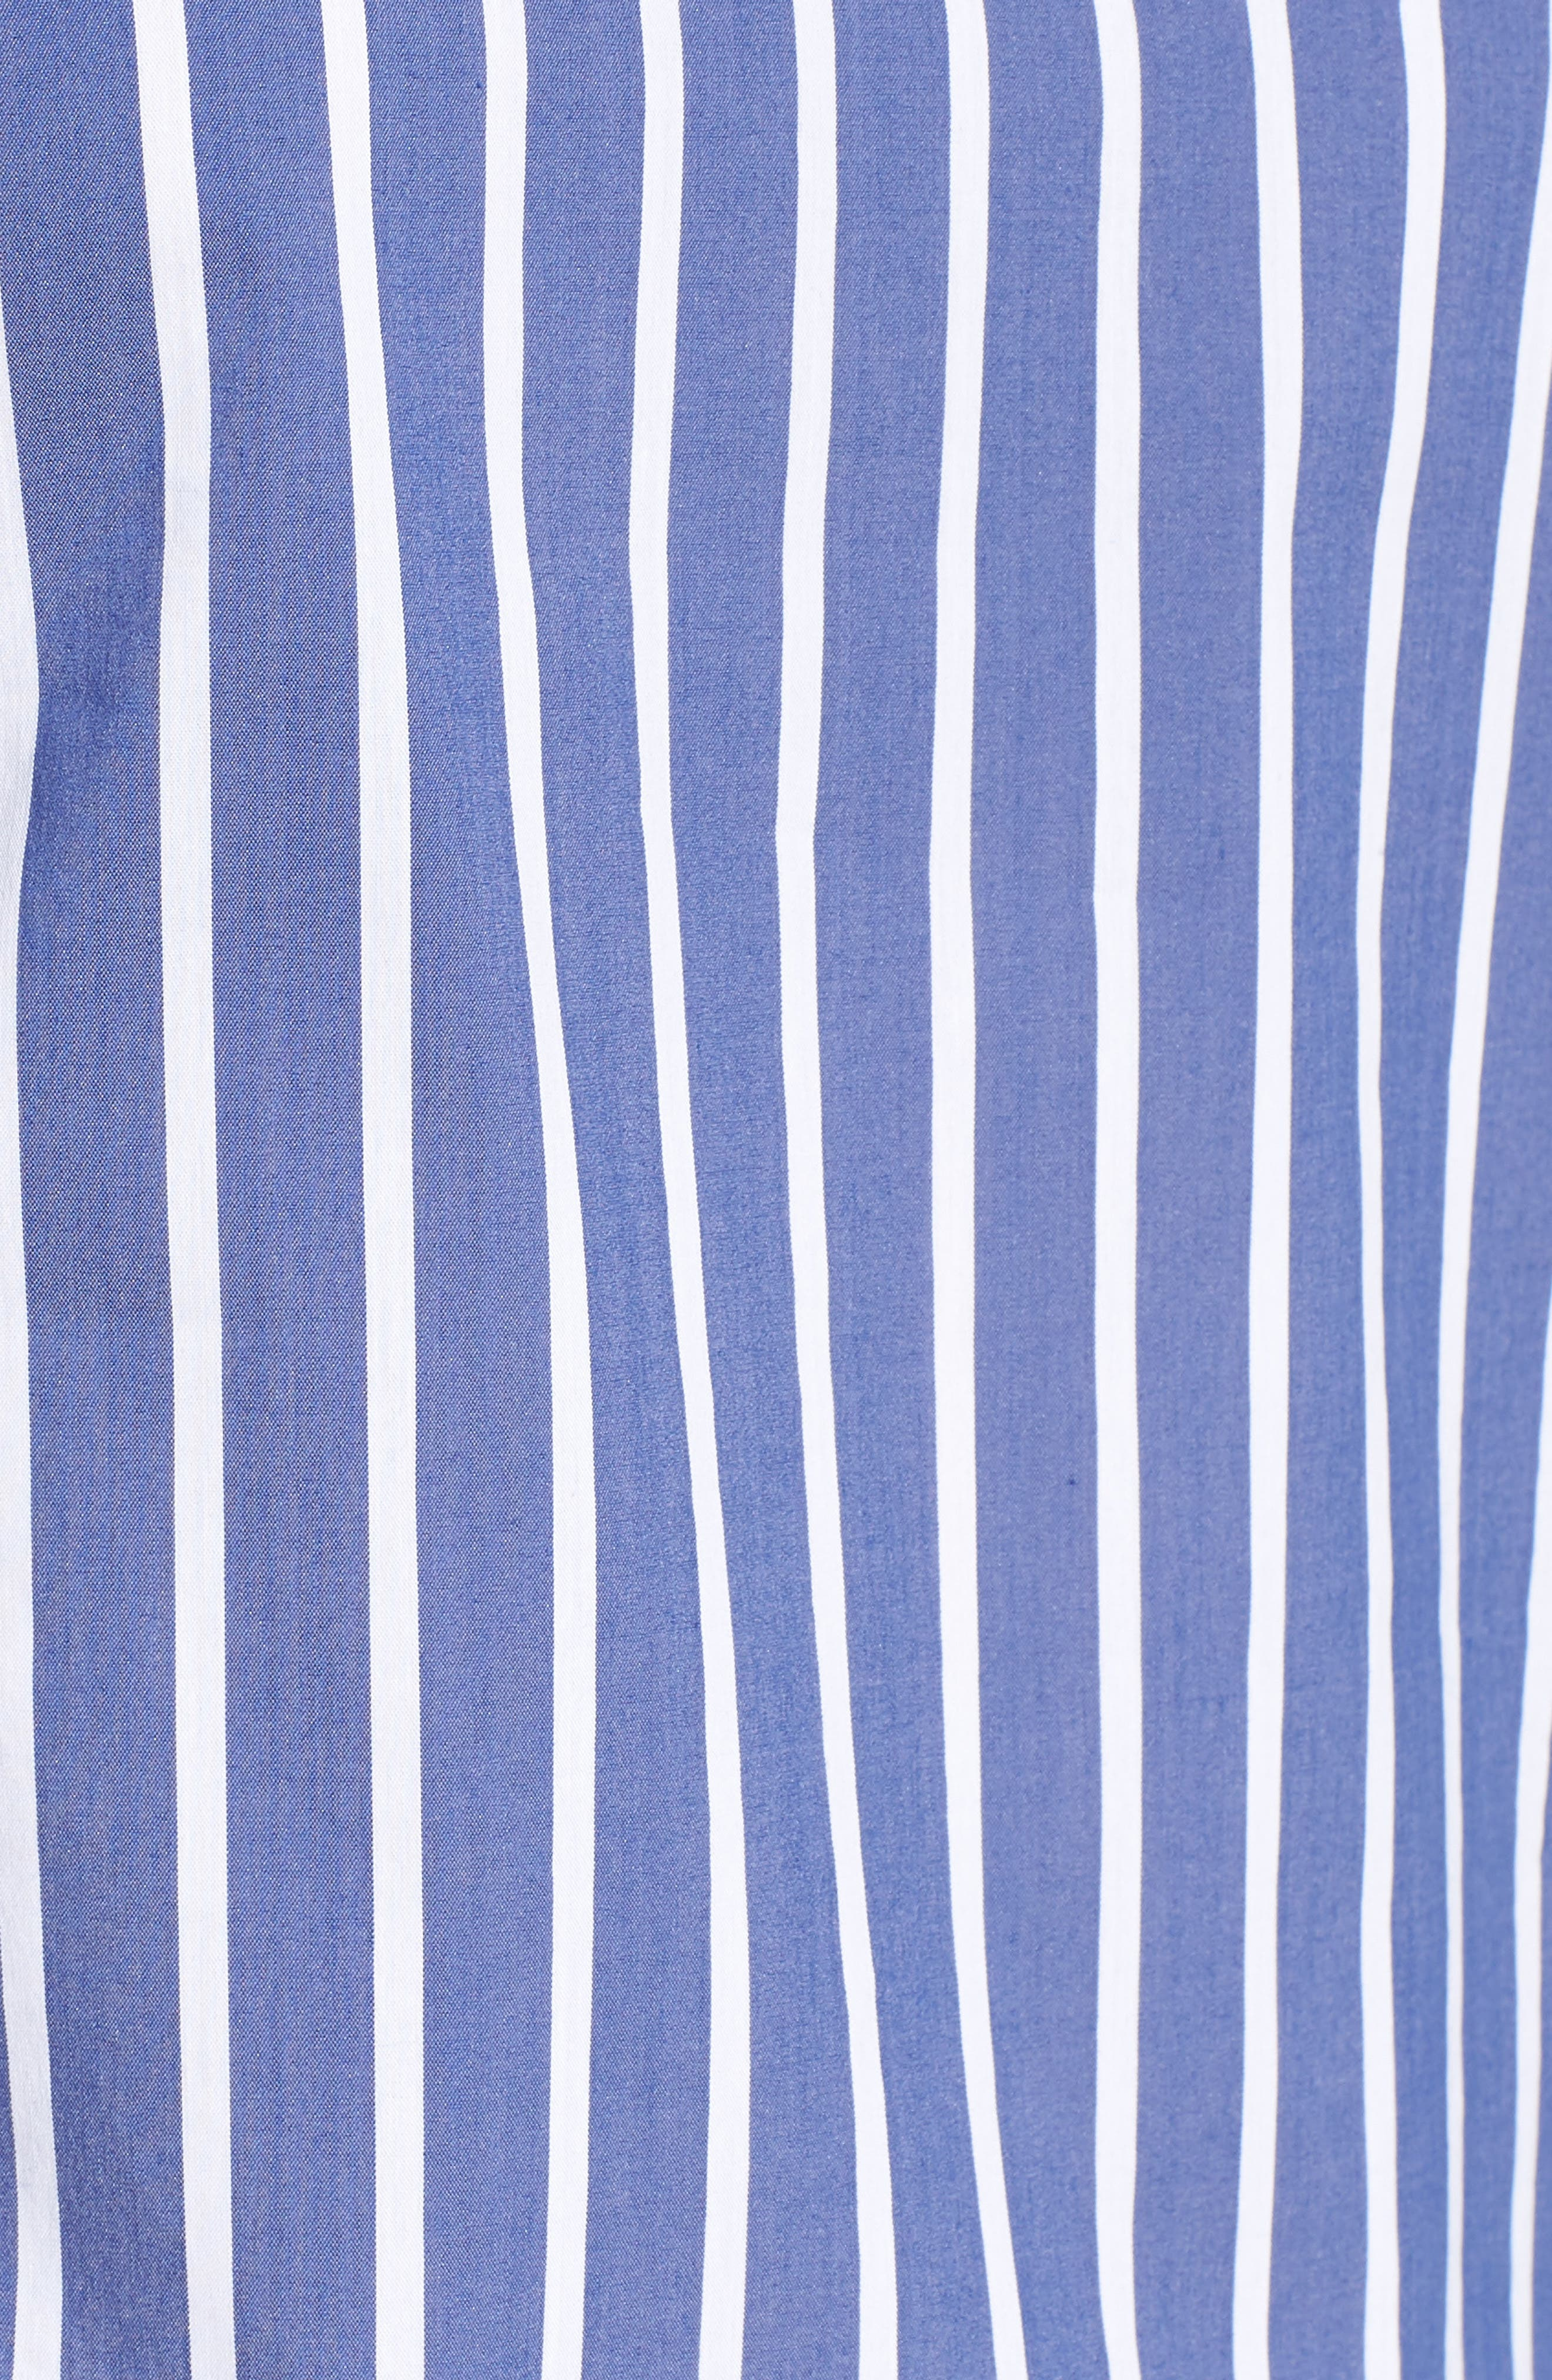 Bishop + Young Gigi Ruffle Sleeve Off the Shoulder Top,                             Alternate thumbnail 6, color,                             BLUE WHITE STRIPE